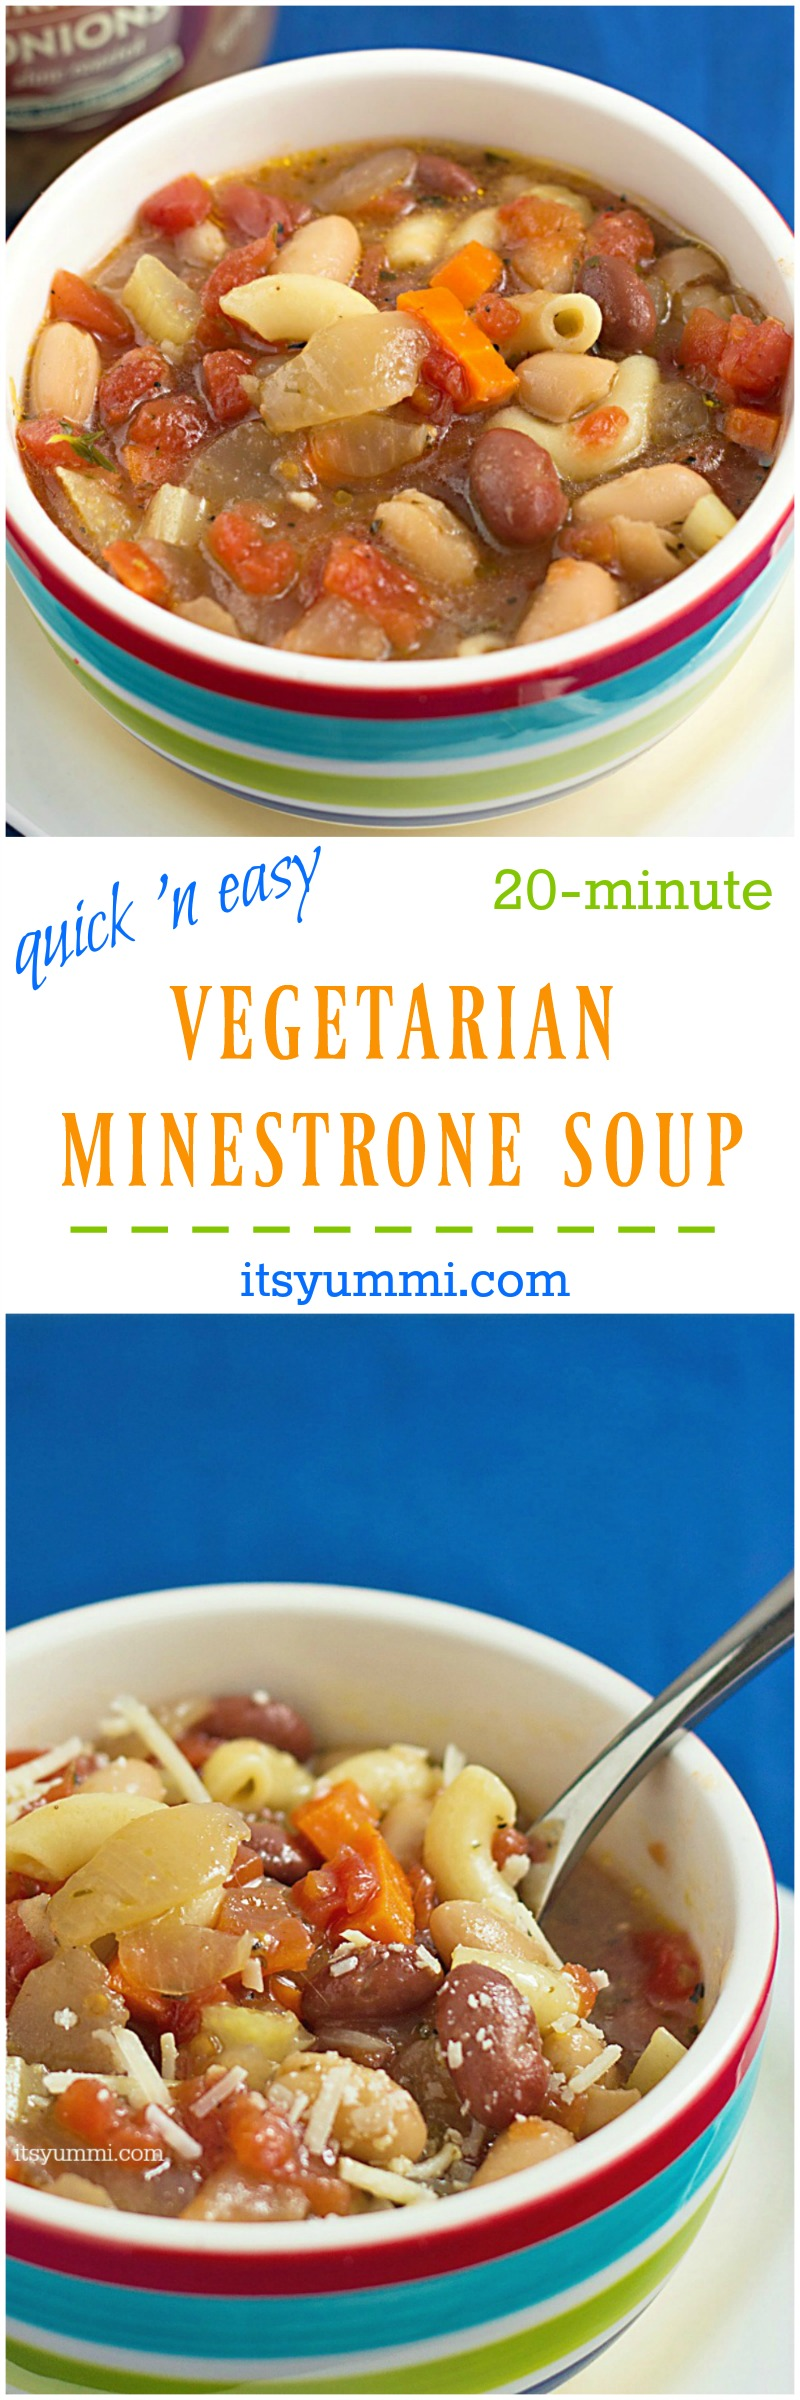 Easy vegetarian minestrone soup its yummi bites of food and life easy vegetarian soup recipe the perfect 20 minute healthy weeknight dinner gluten forumfinder Choice Image